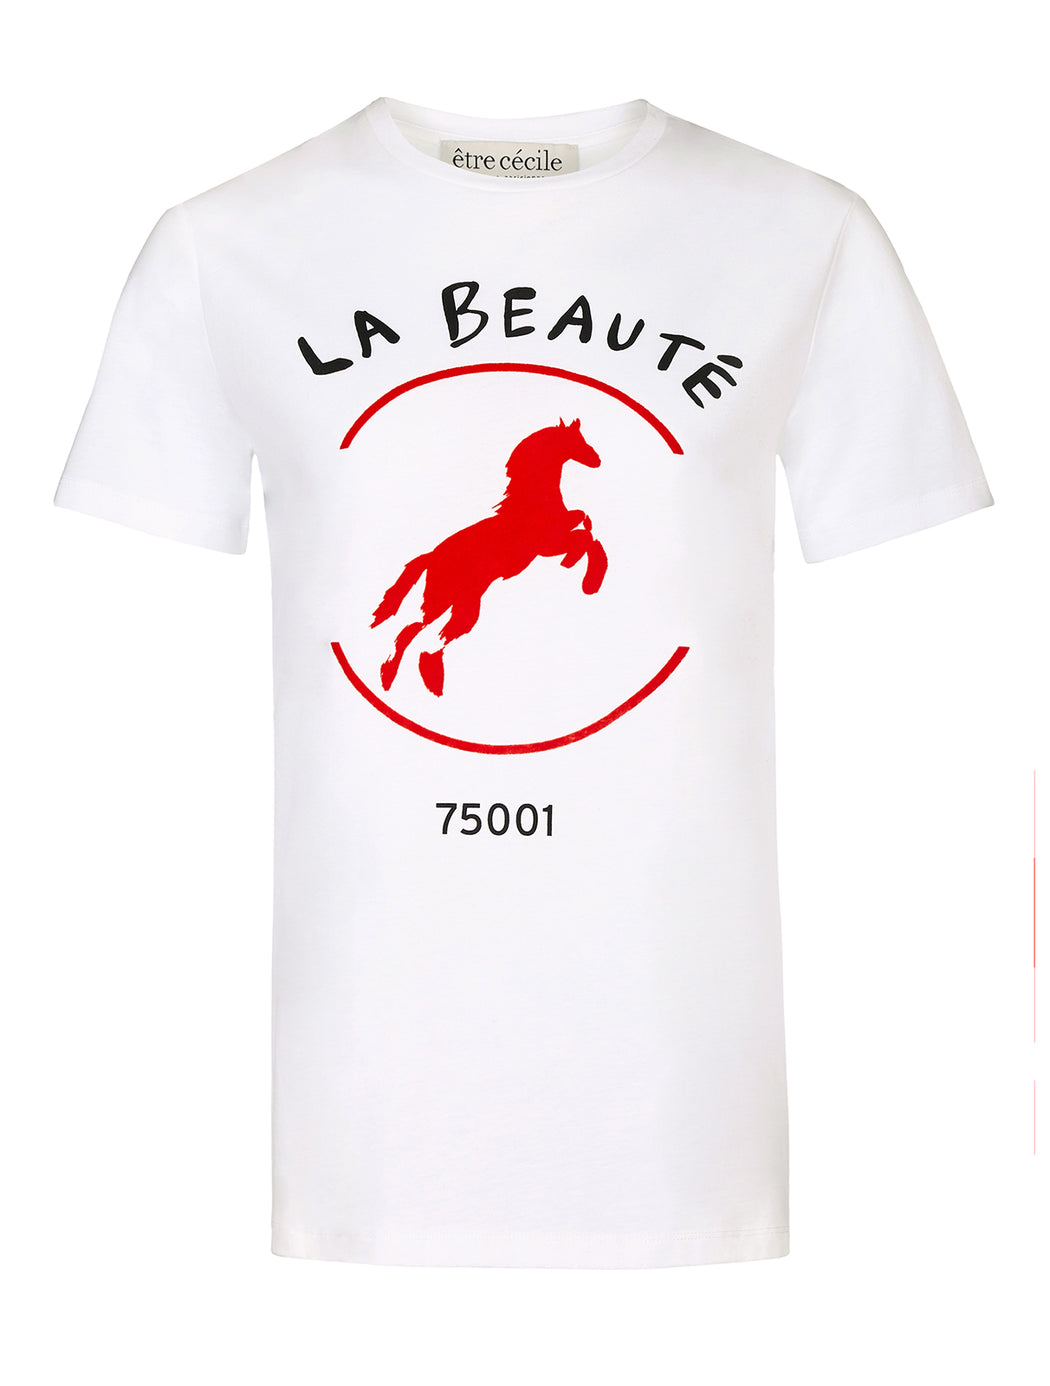 La Beaute T-Shirt